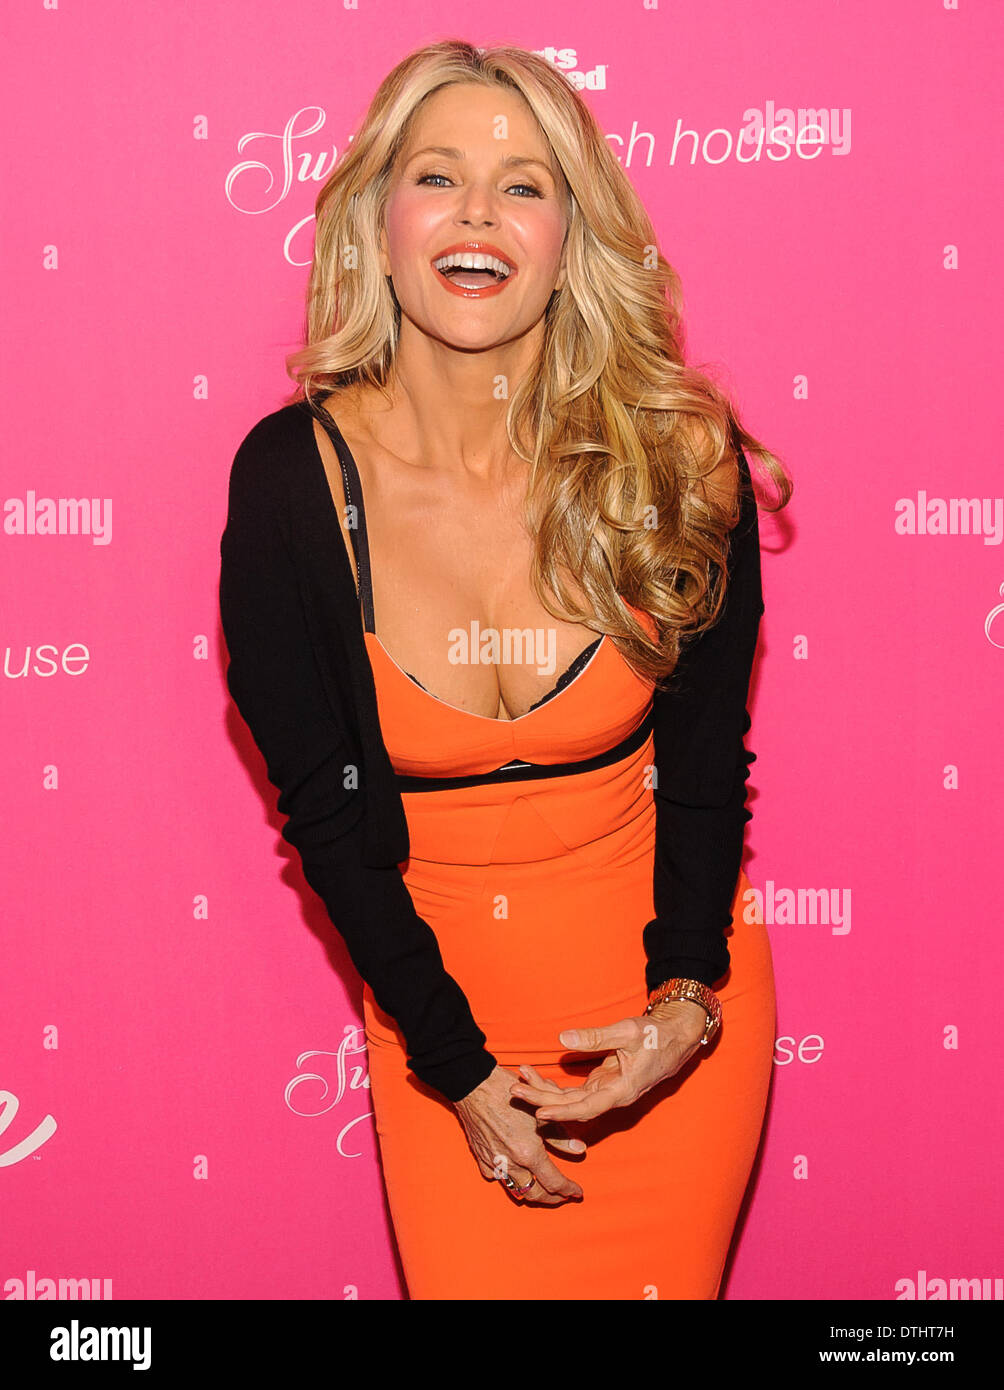 New York City, USA, 17 February, 2014. Model Christie Brinkley arrives at a 50th Anniversary party for Sports Illustrated Swimsuit in Soho, NYC. Credit:  Patrick Morisson/Alamy Live News Stock Photo